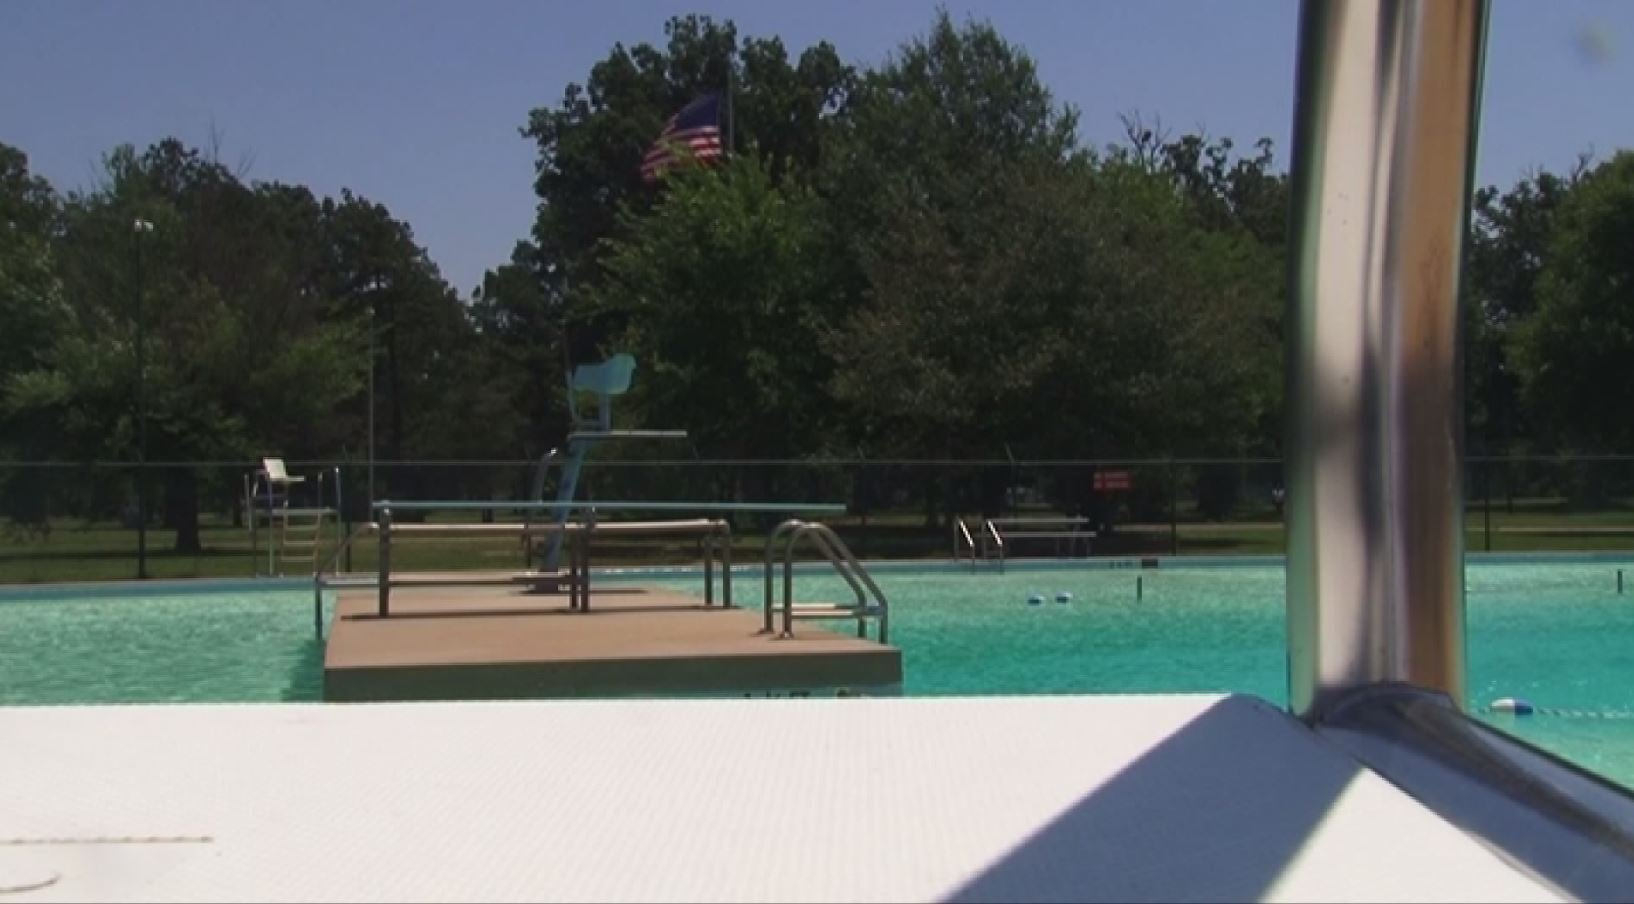 Cdc Warns Public About Rising Parasitic Bacteria In Public Pools Kptv Fox 12